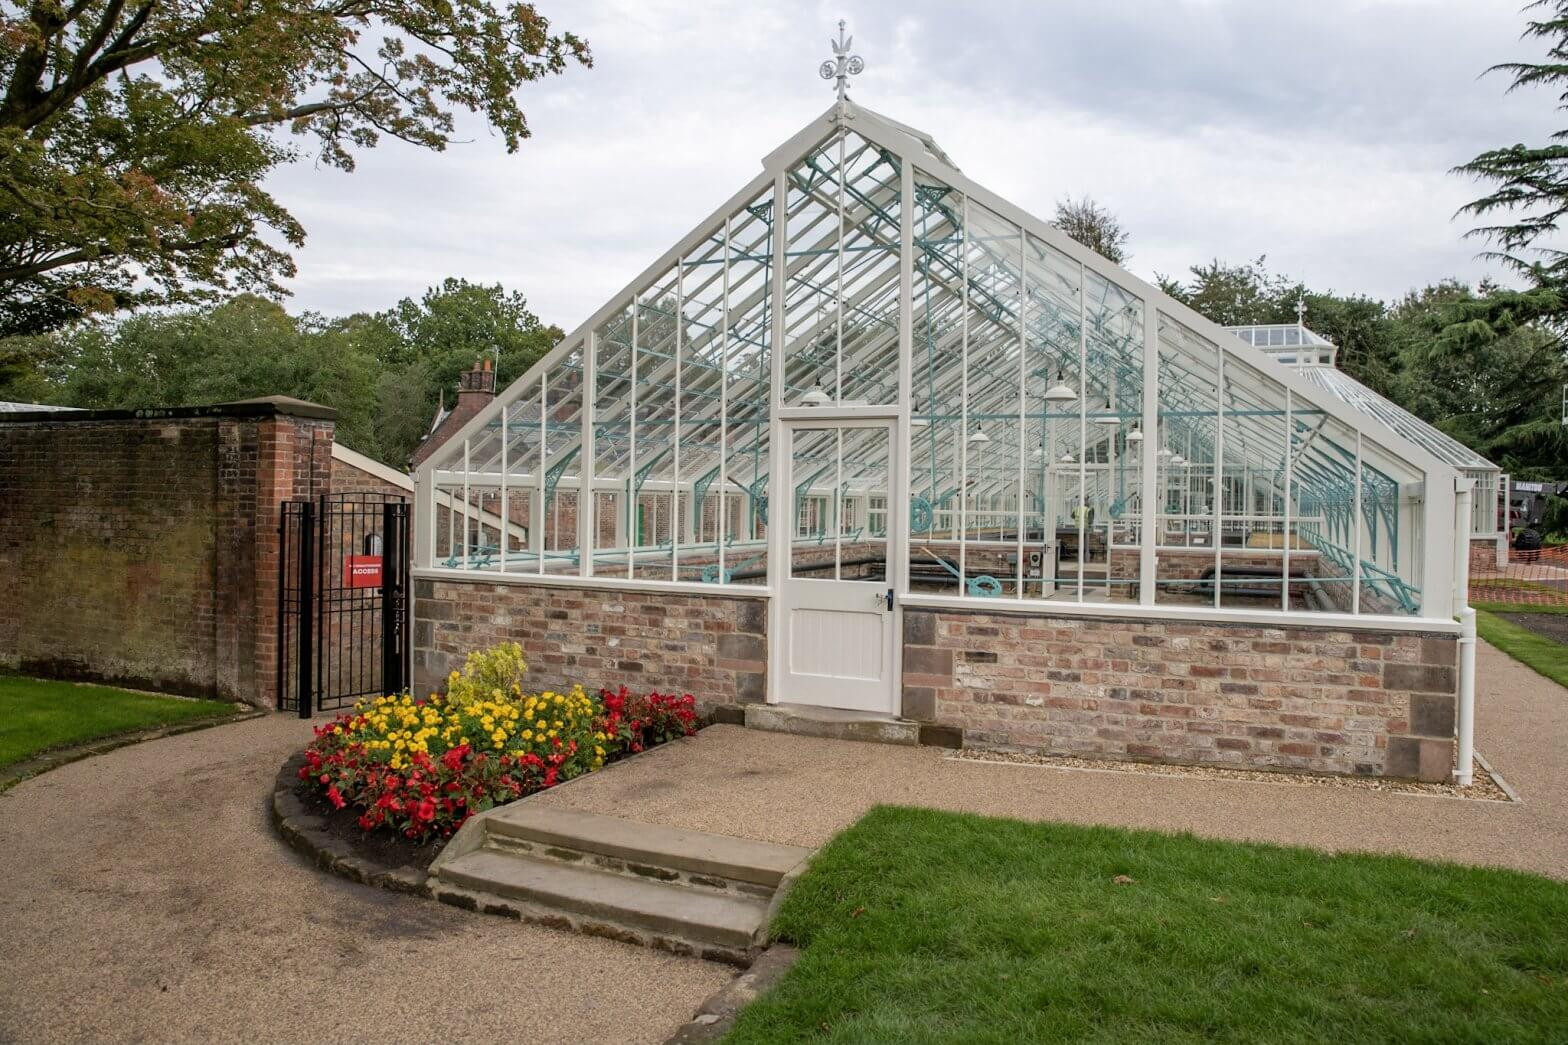 The side entrance to the glasshouses at Walton Hall and Gardens